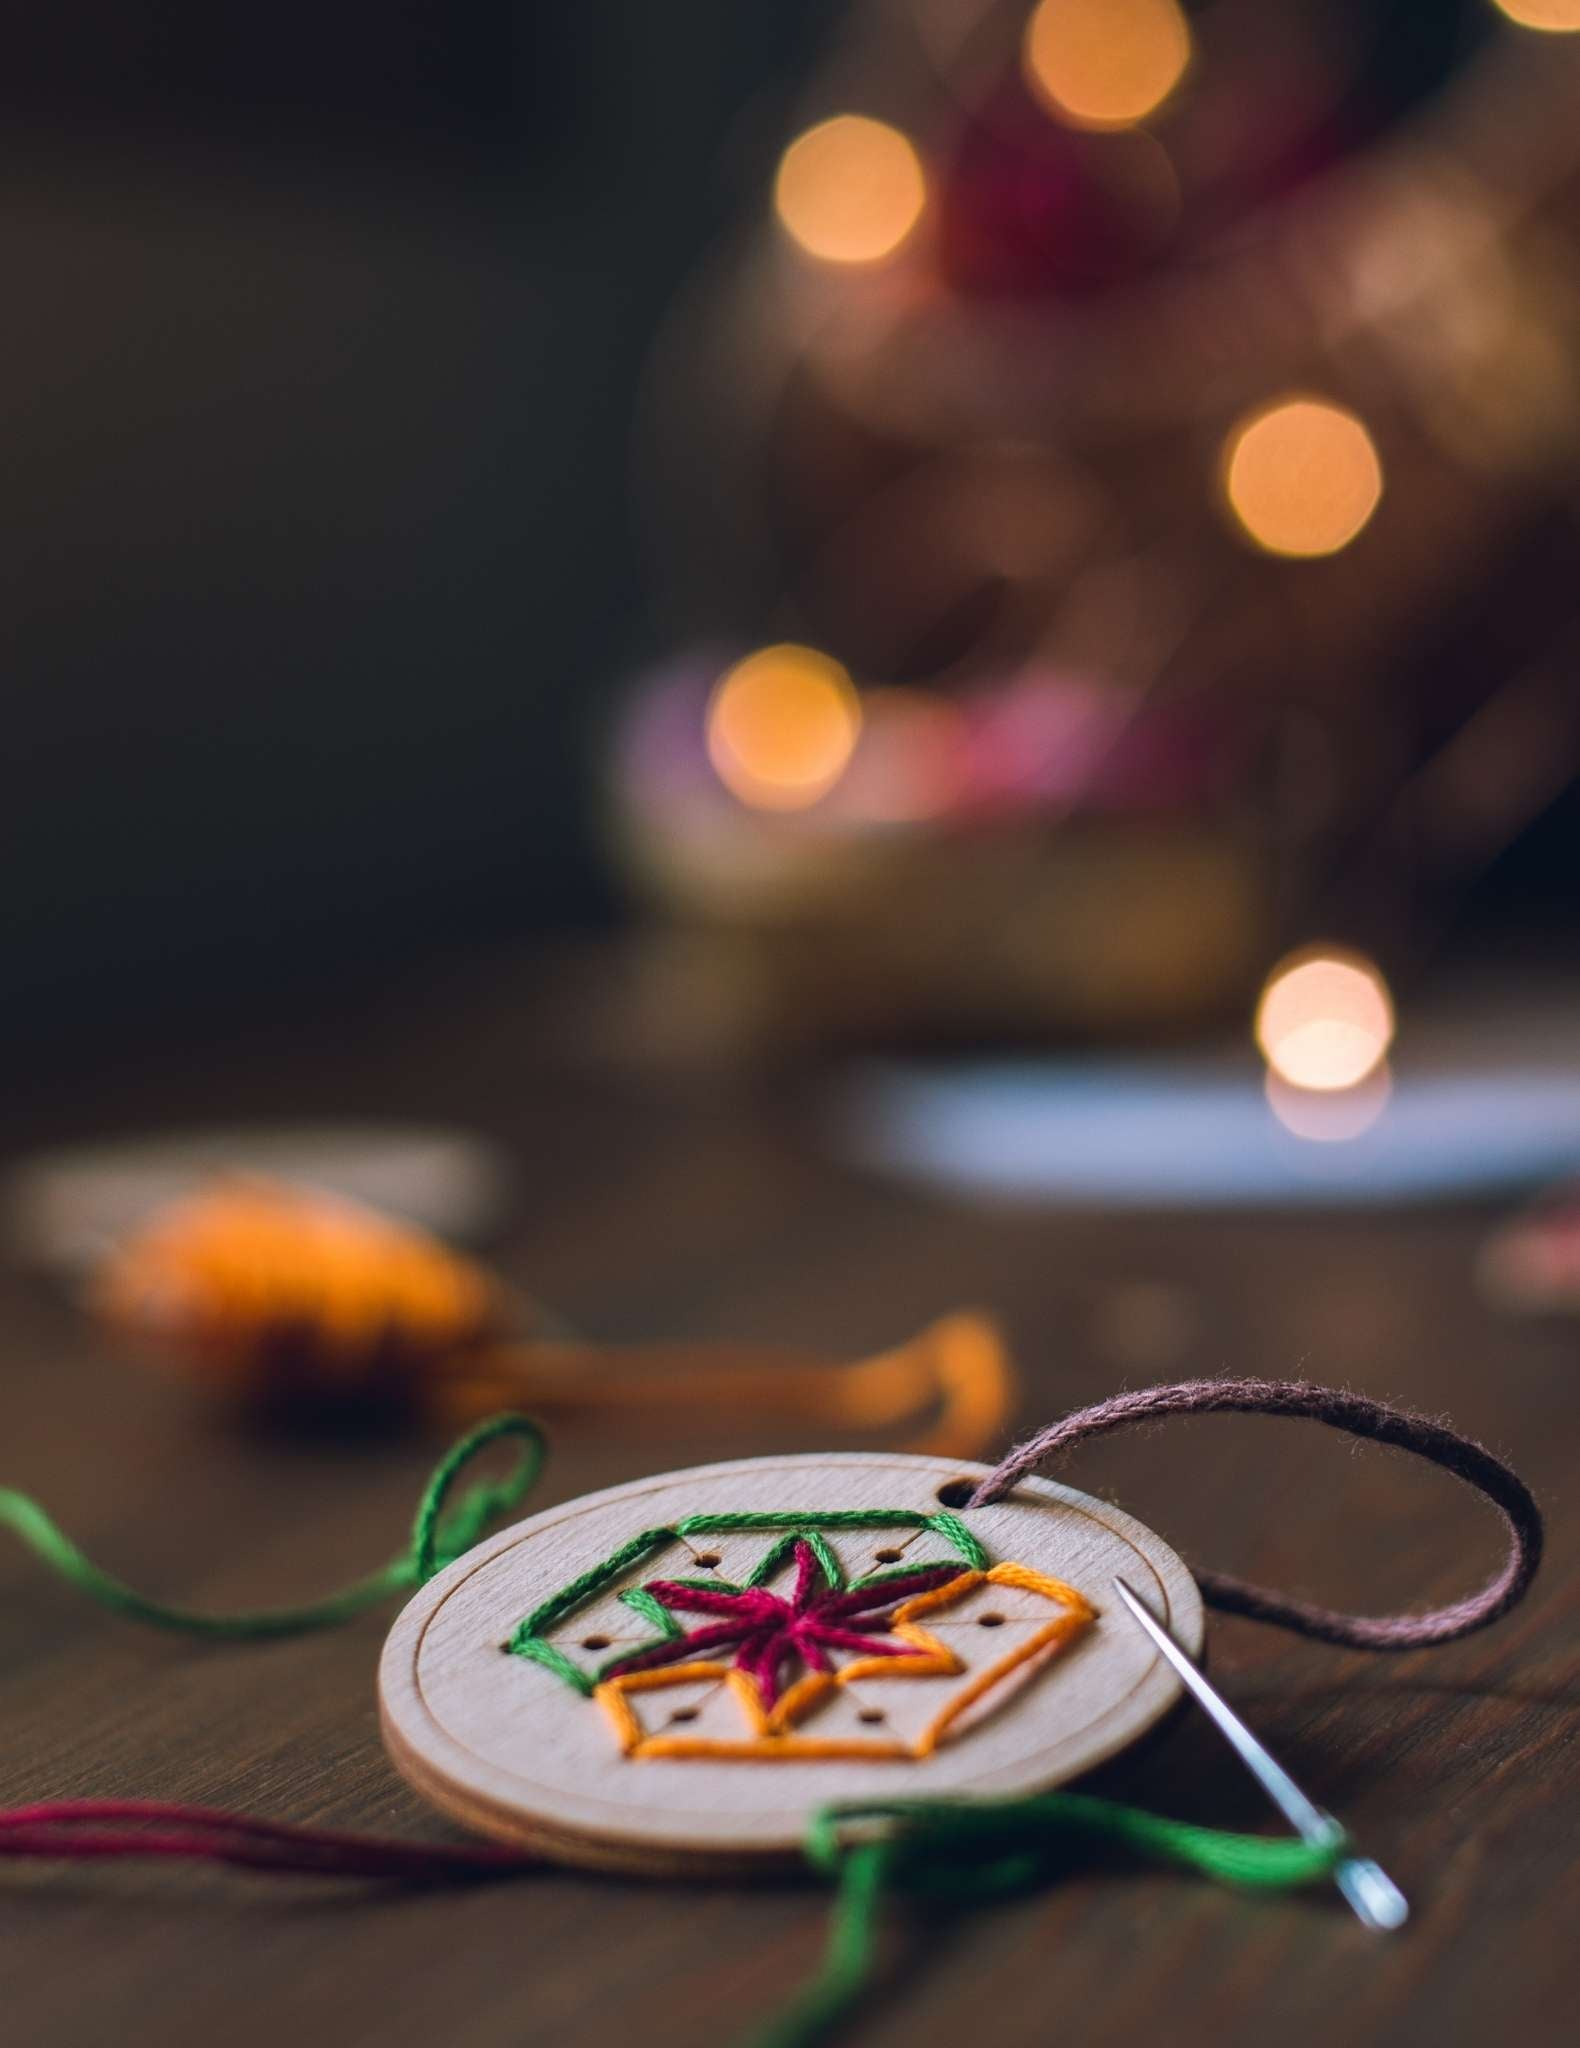 A circular wooden ornament is being hand stitched in a snowflake motif with brightly coloured threads. It lies on a table in front of a tree with fairy lights.